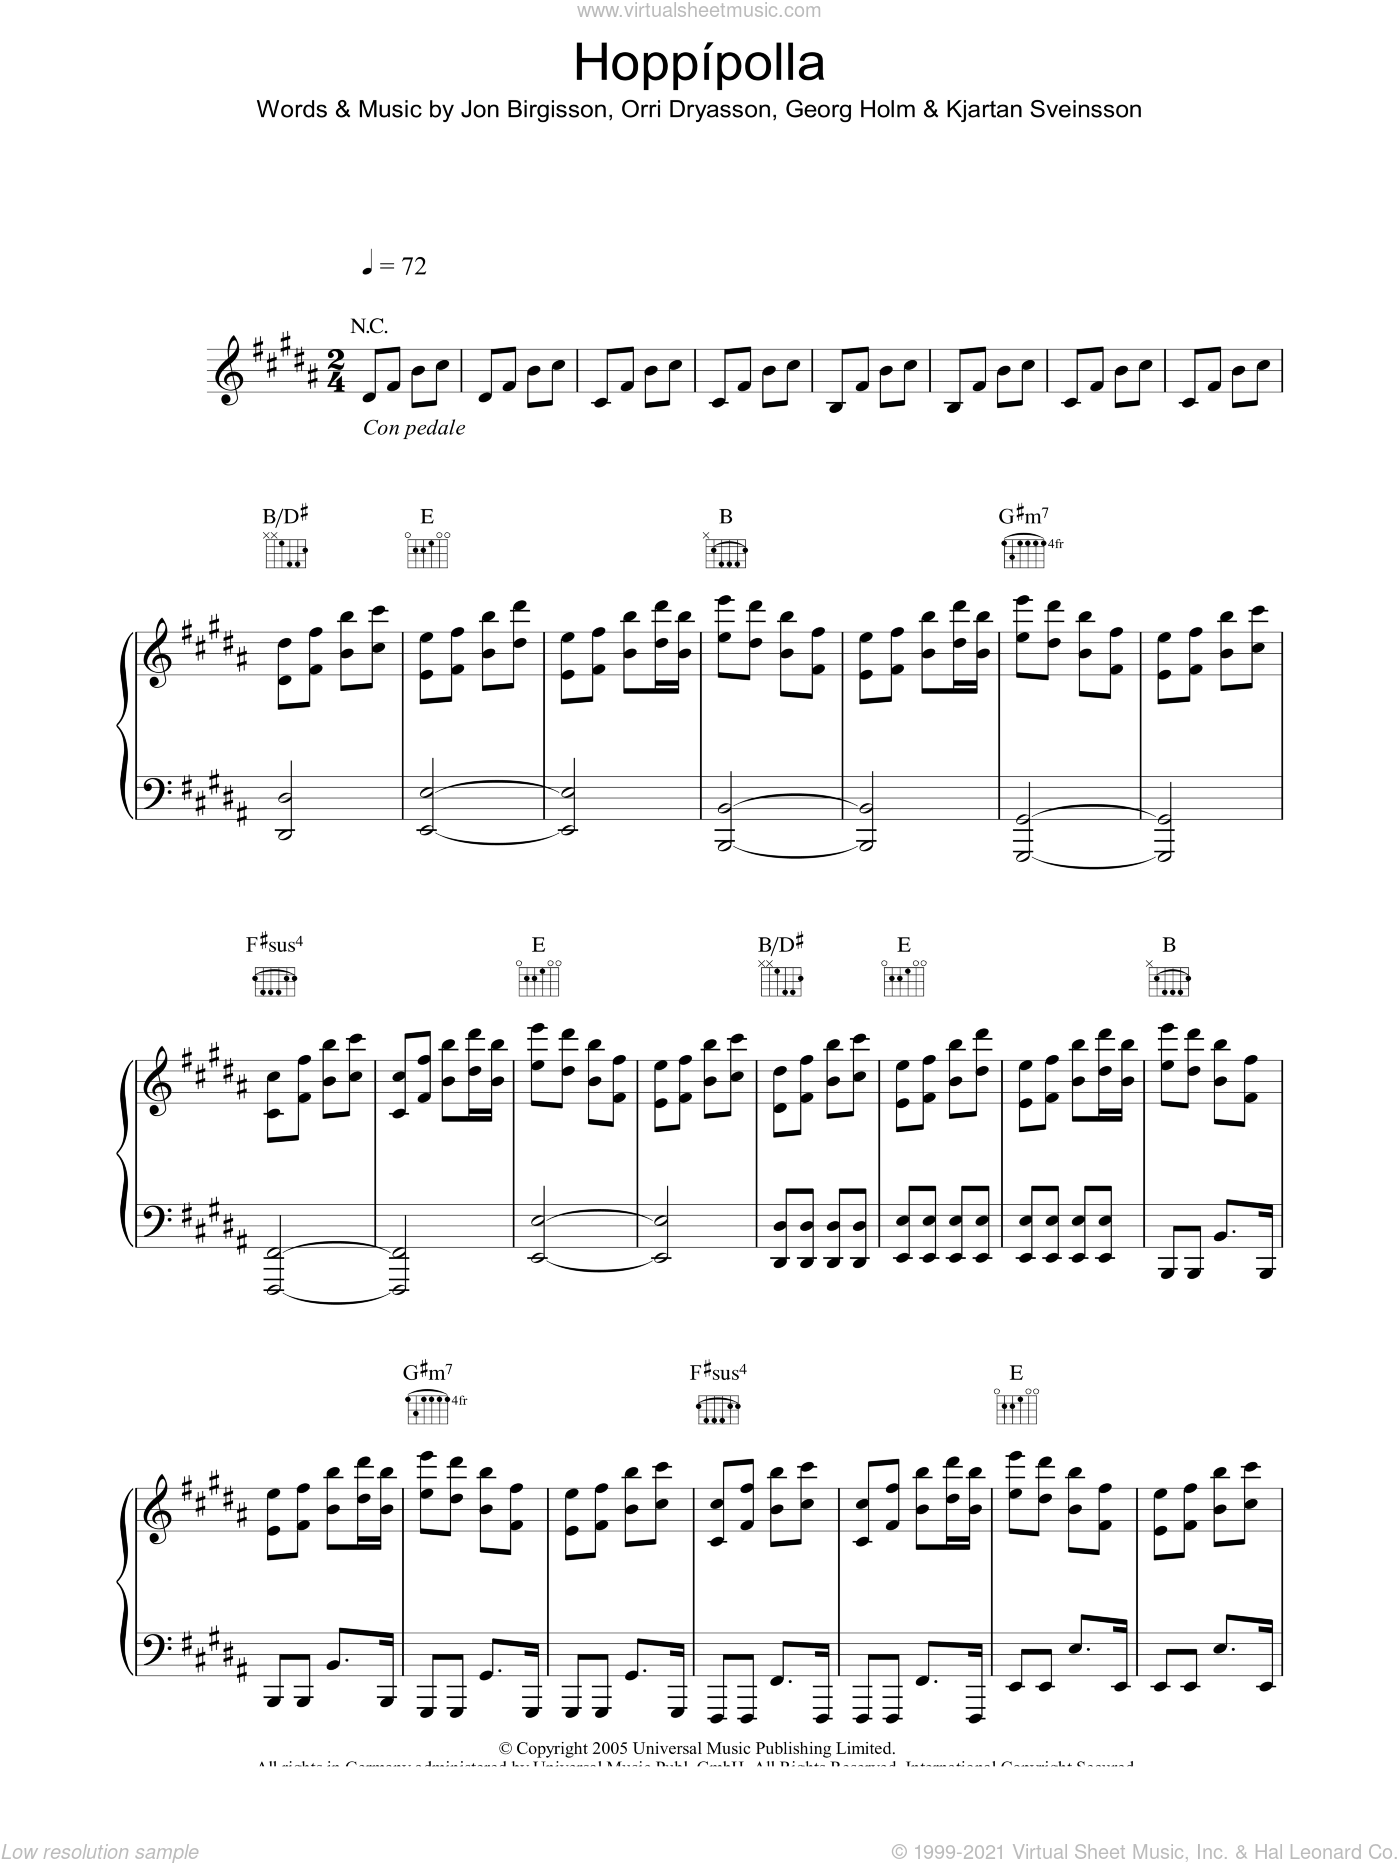 Hoppipolla sheet music for voice, piano or guitar by Sigur Ros, Georg Holm, Jon Birgisson, Kjartan Sveinsson and Orri Dryasson, intermediate skill level